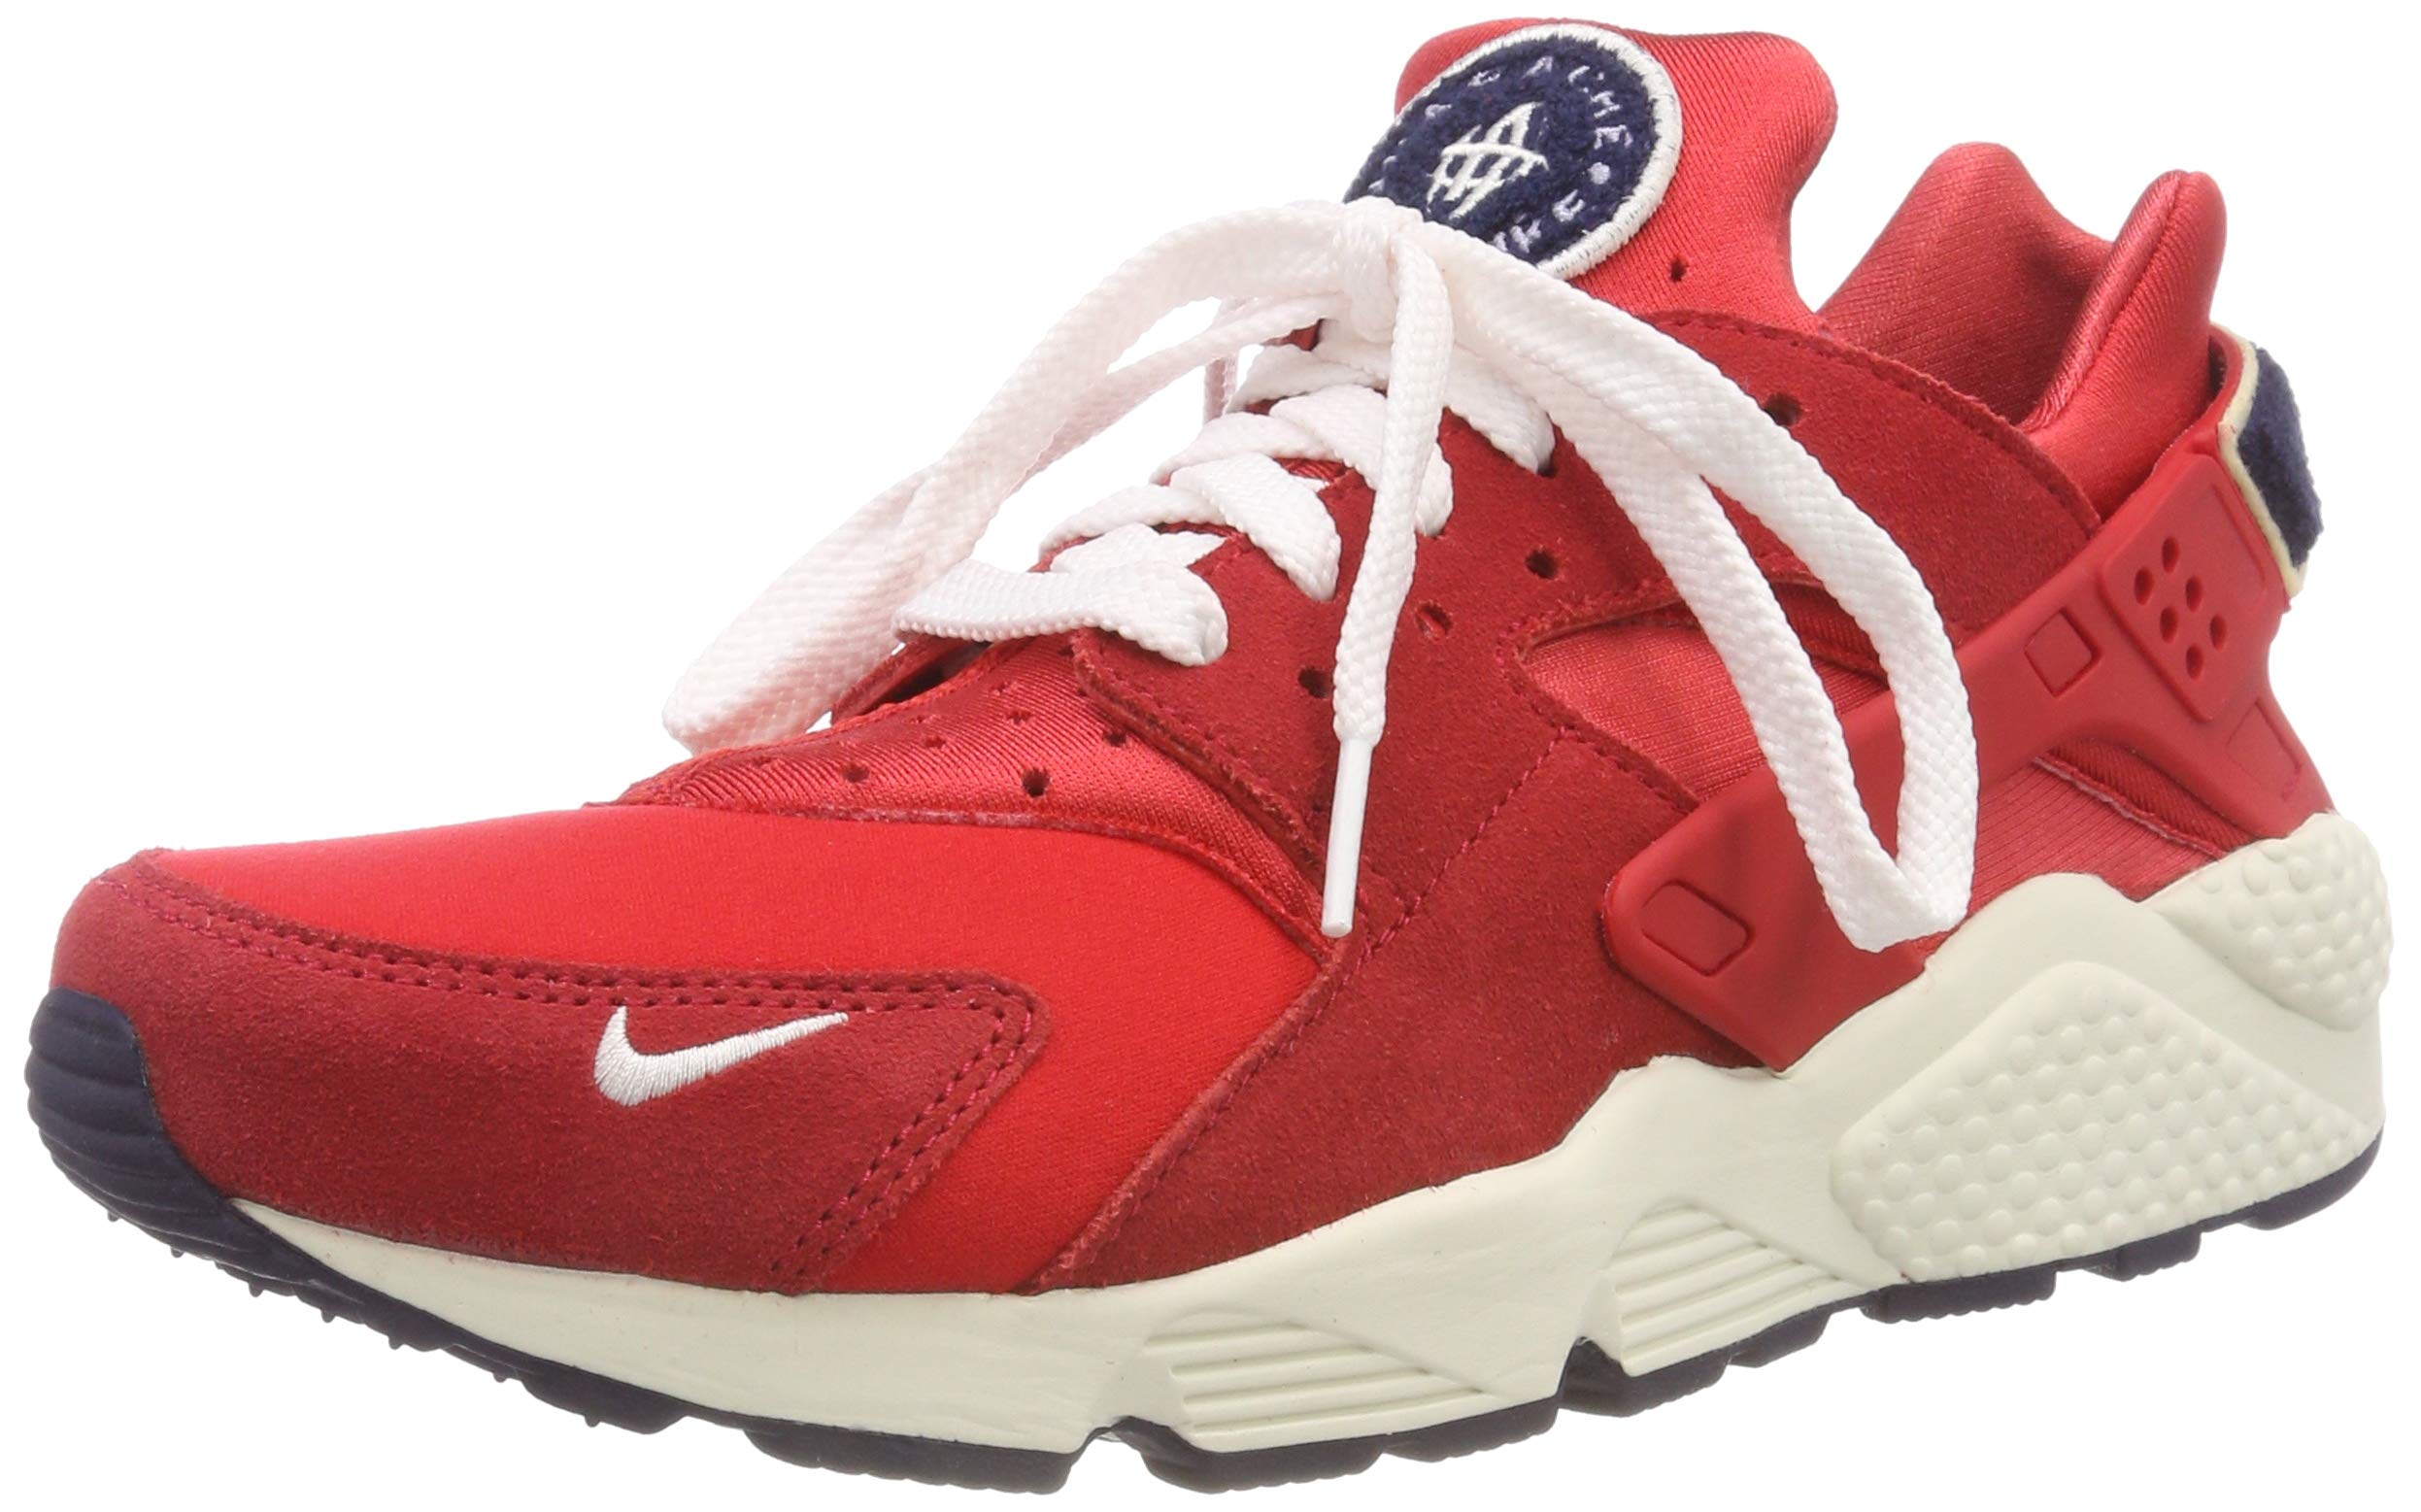 super popular 2bba4 9dd57 Galleon - Nike Air Huarache Run PRM Mens 704830-602 Size 12.5